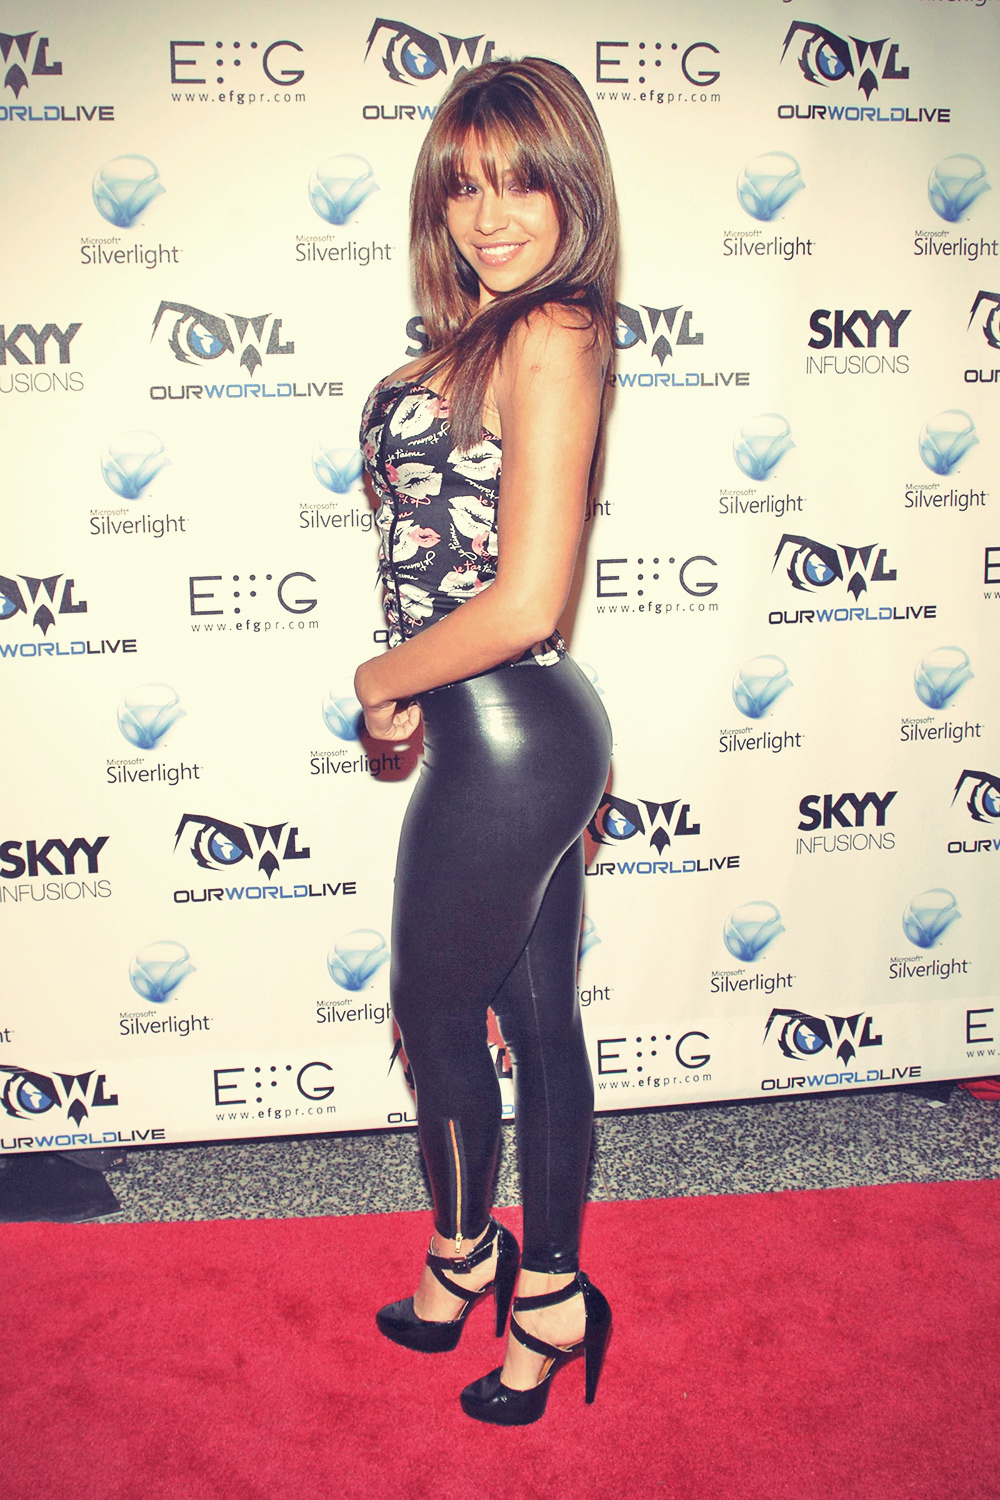 Vida Guerra at One World Live